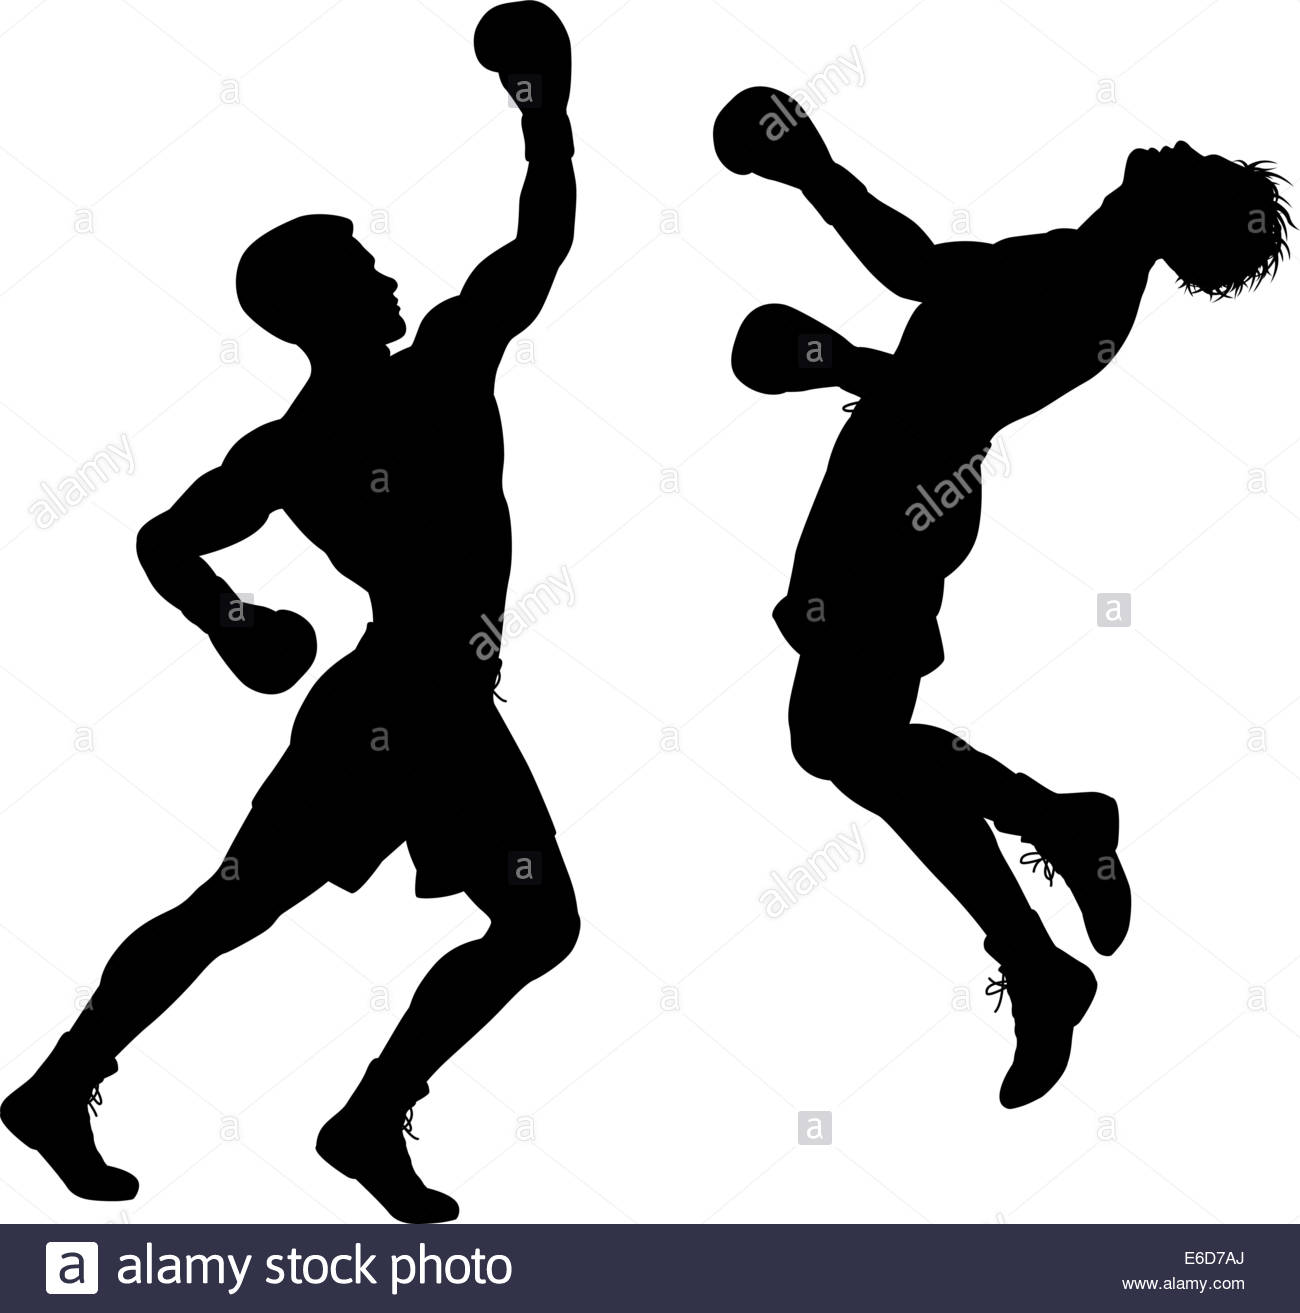 1300x1313 Boxing Fight Silhouette Stock Photos Amp Boxing Fight Silhouette